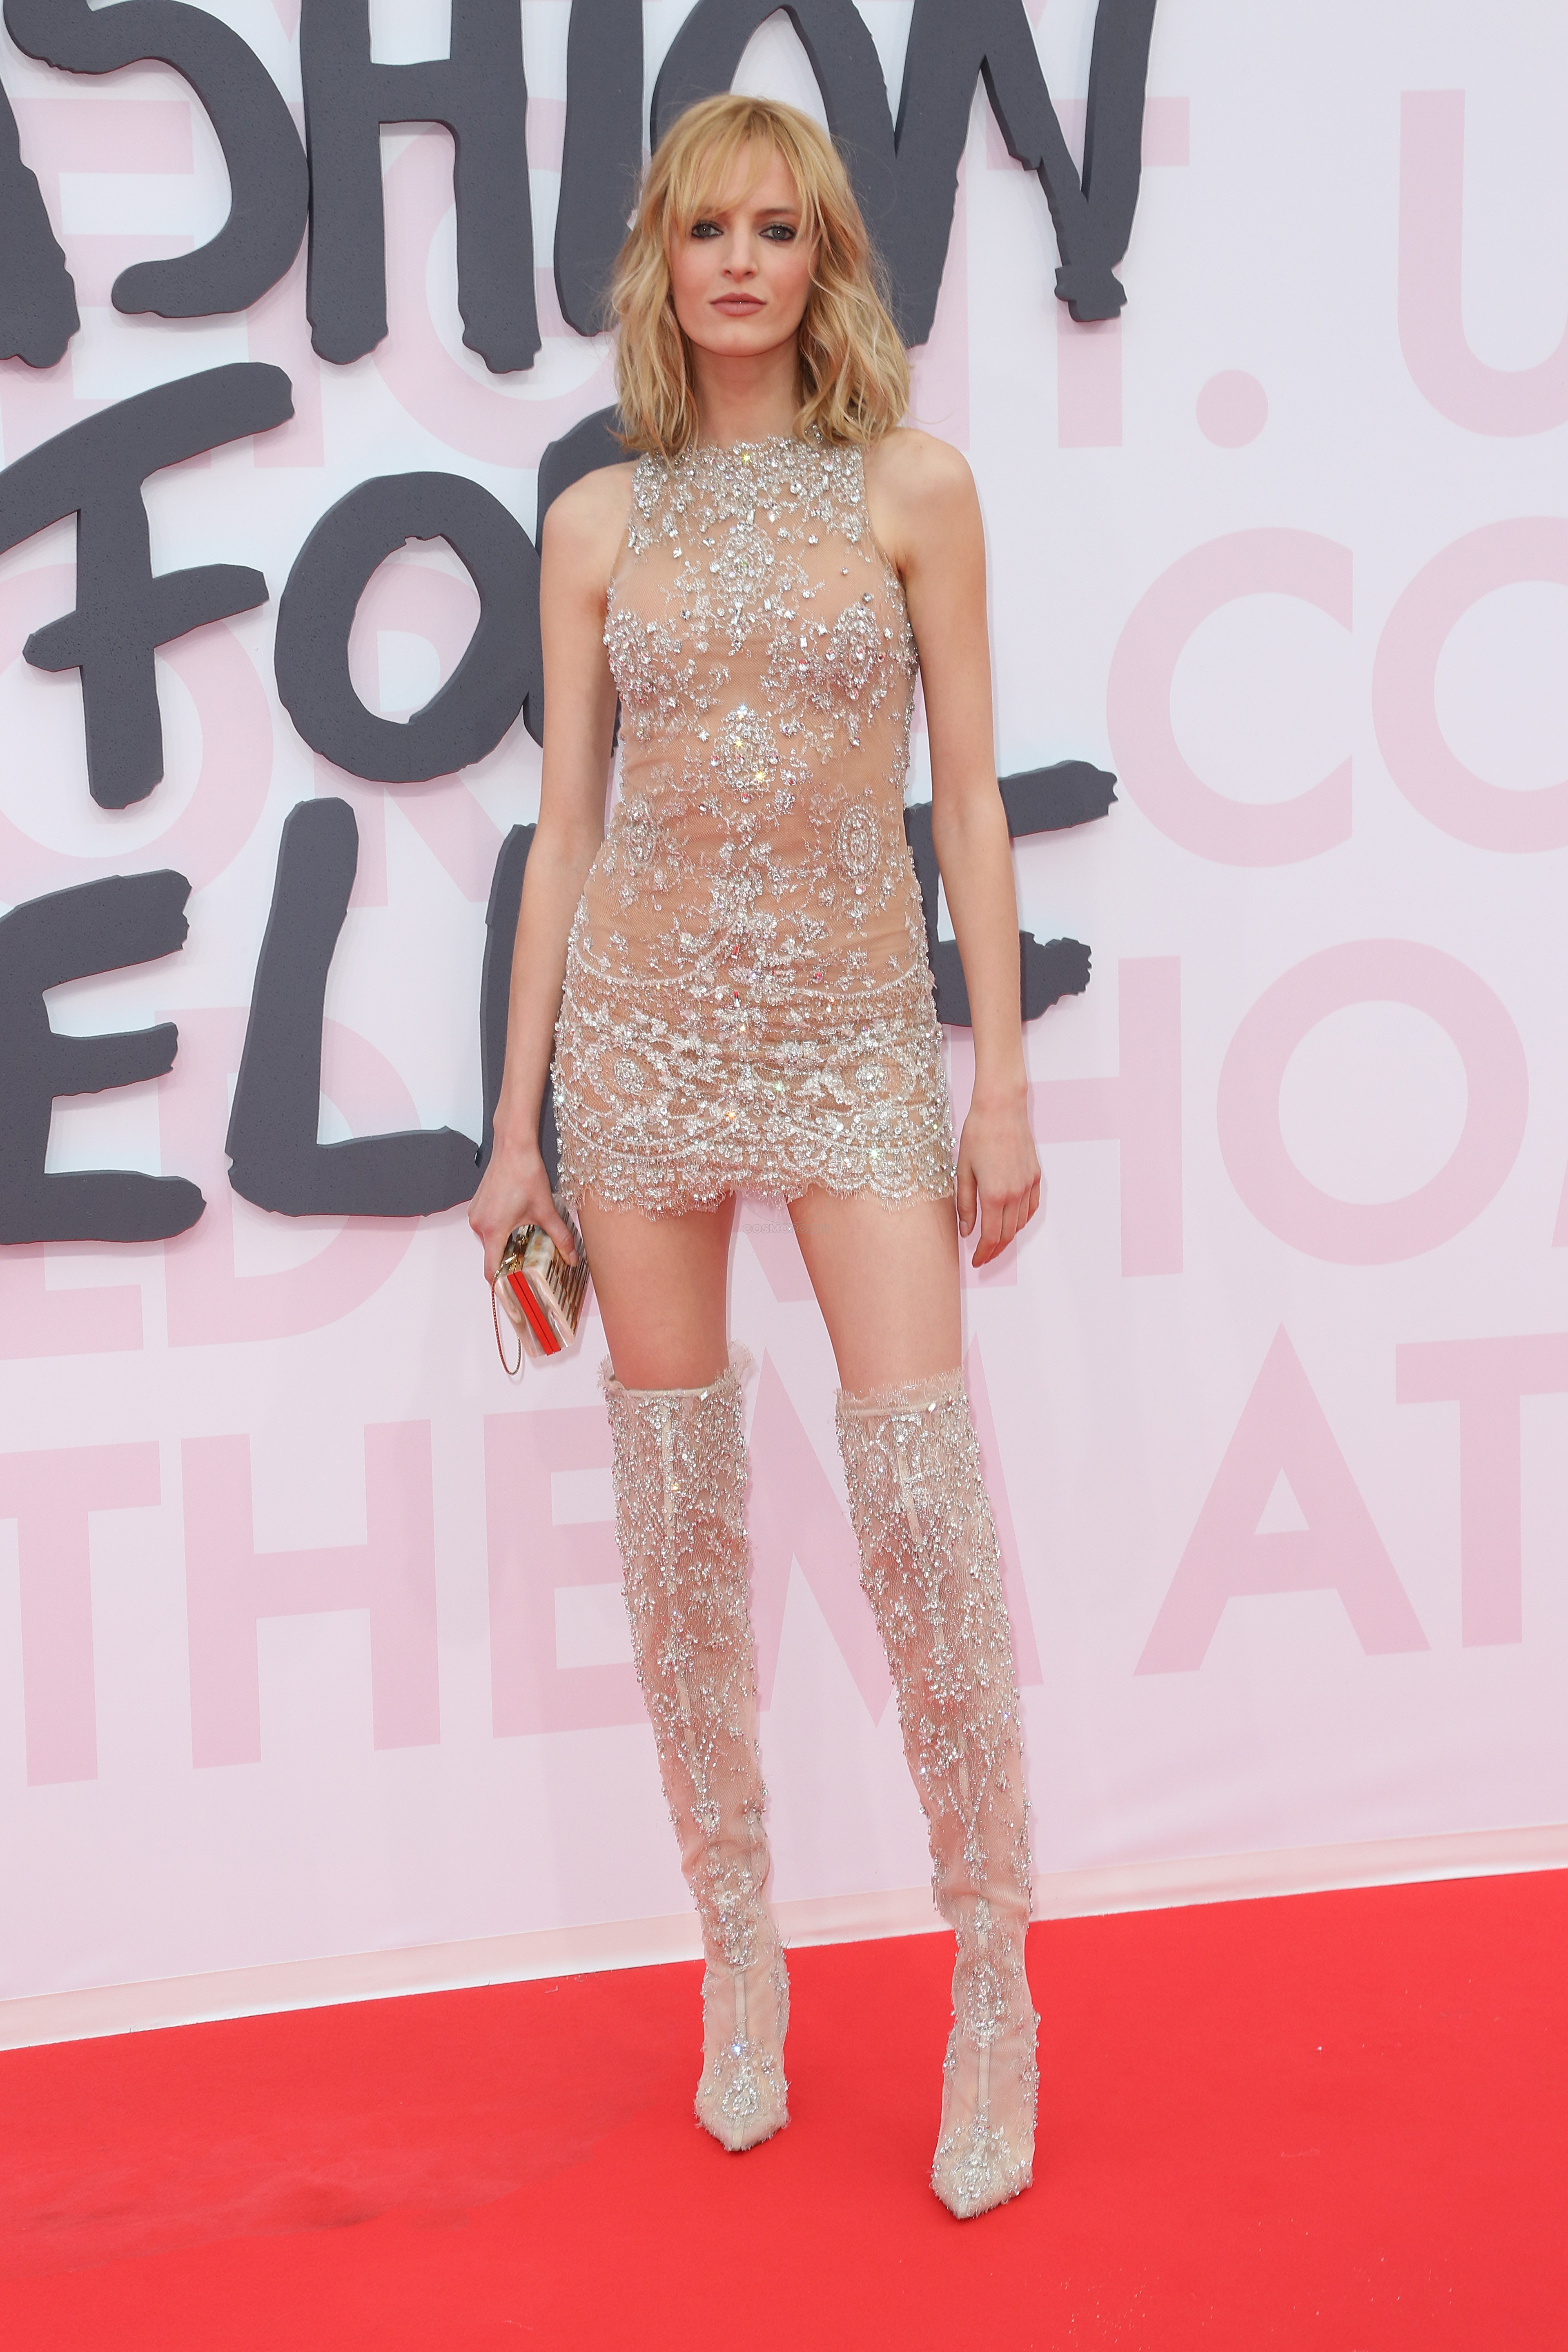 DARIA STROUKOS Red Carpet Arrivals - Fashion For Relief Cannes 2018 CANNES, FRANCE - MAY 13: during the 71st annual Cannes Film Festival at Aeroport Cannes Mandelieu on May 13, 2018 in Cannes